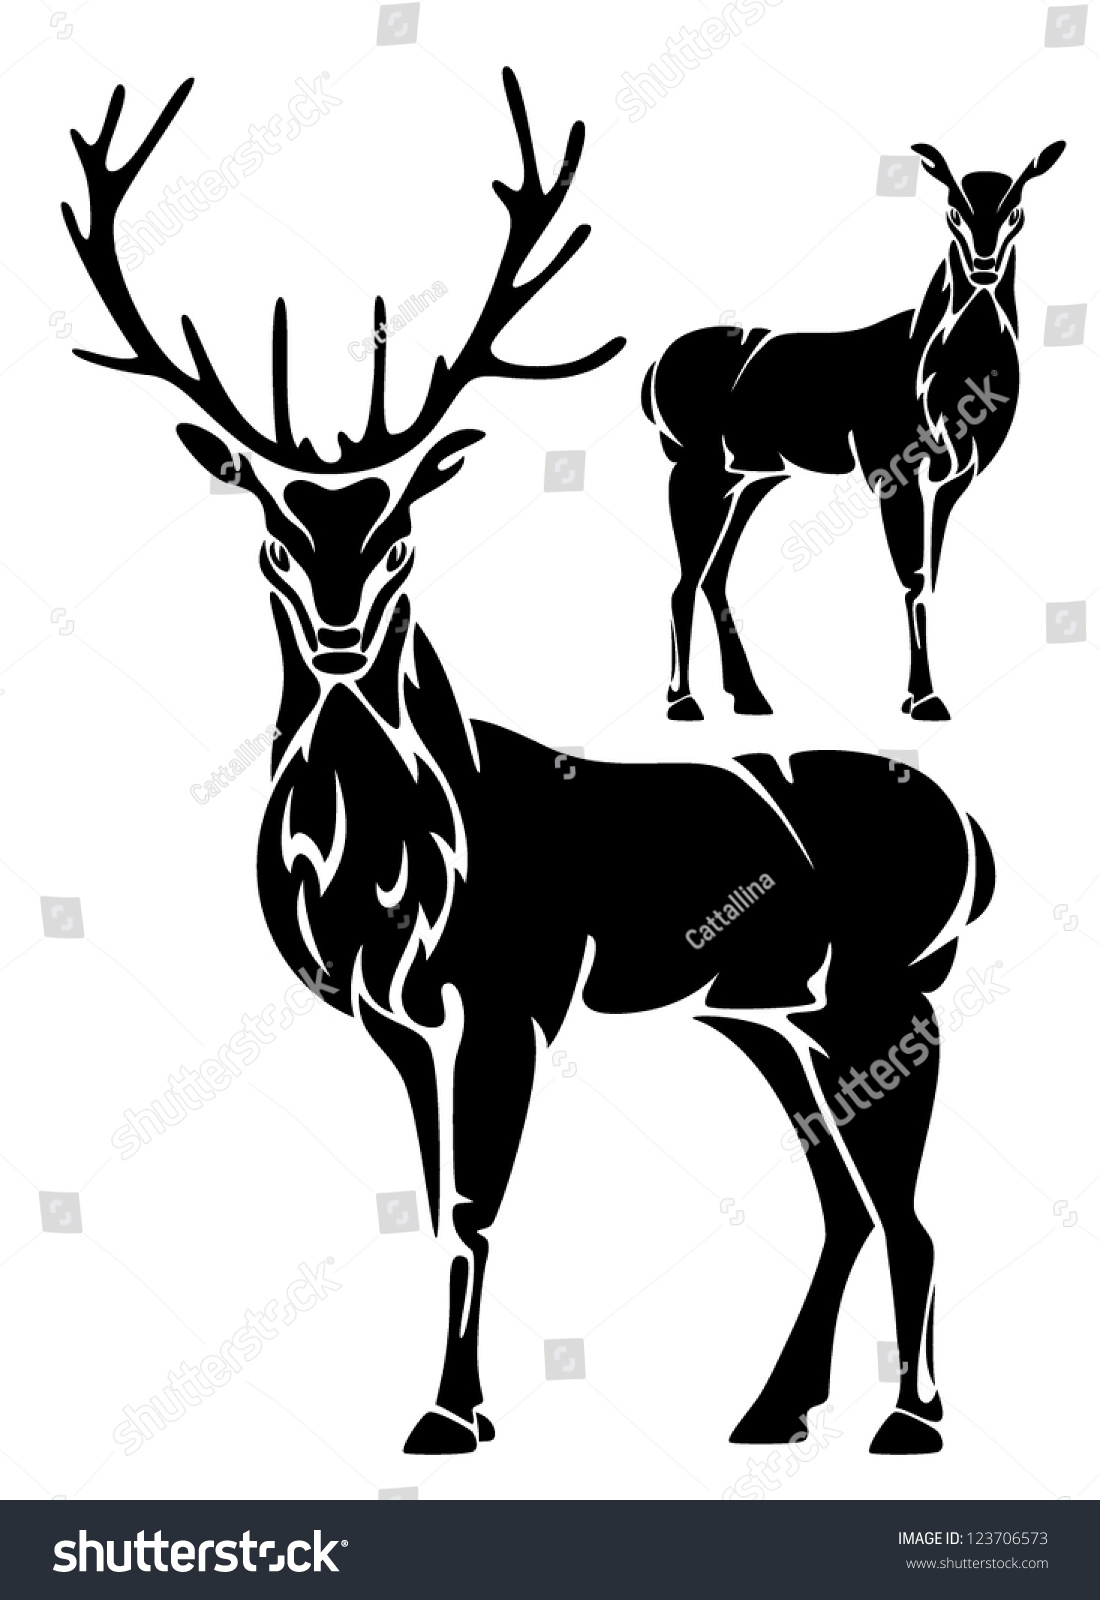 black singles in white deer Animal facts - deer:  fawns have a reddish-brown color covered with white spots, which help camouflage them and disappear when they are 3-4 months old.